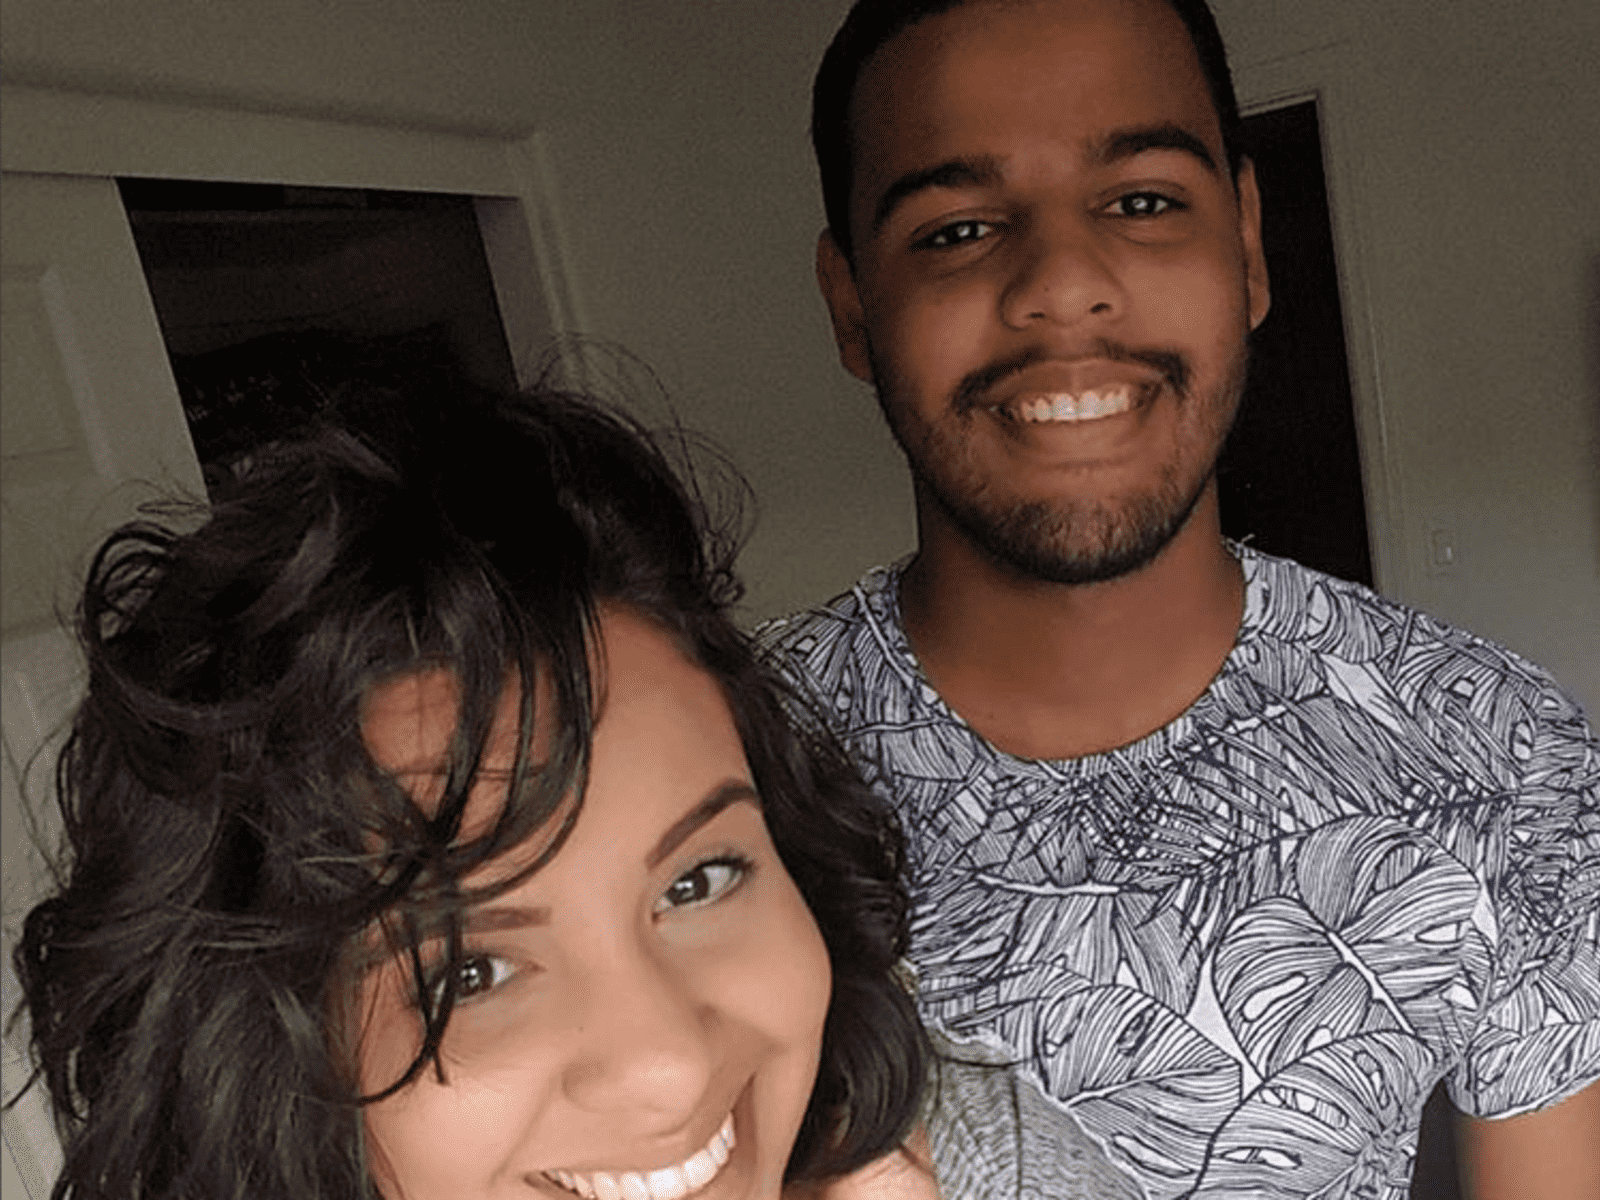 Anderson & Anyelle from Brasília, Brazil